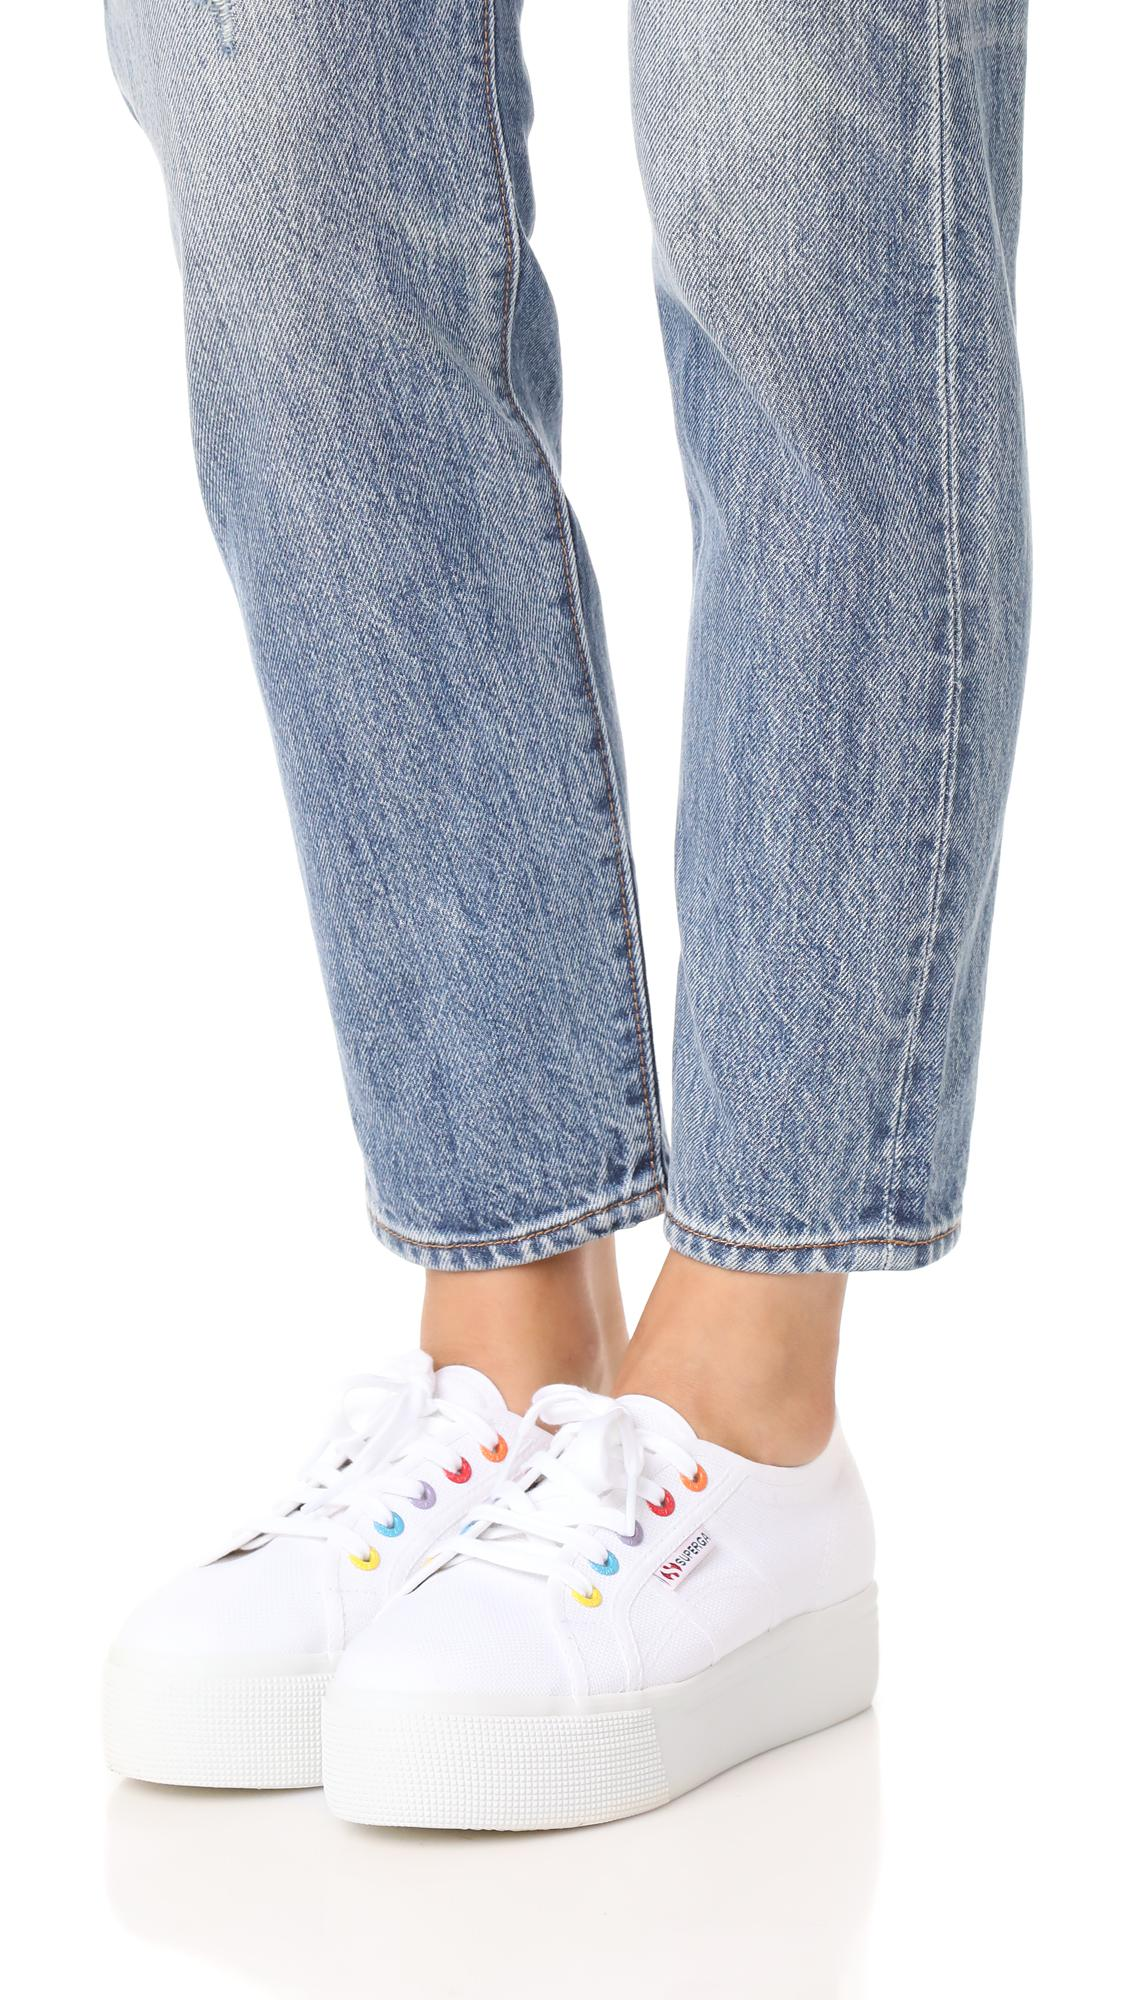 681e6821531a Gallery. Previously sold at  Shopbop · Women s Platform Sneakers ...